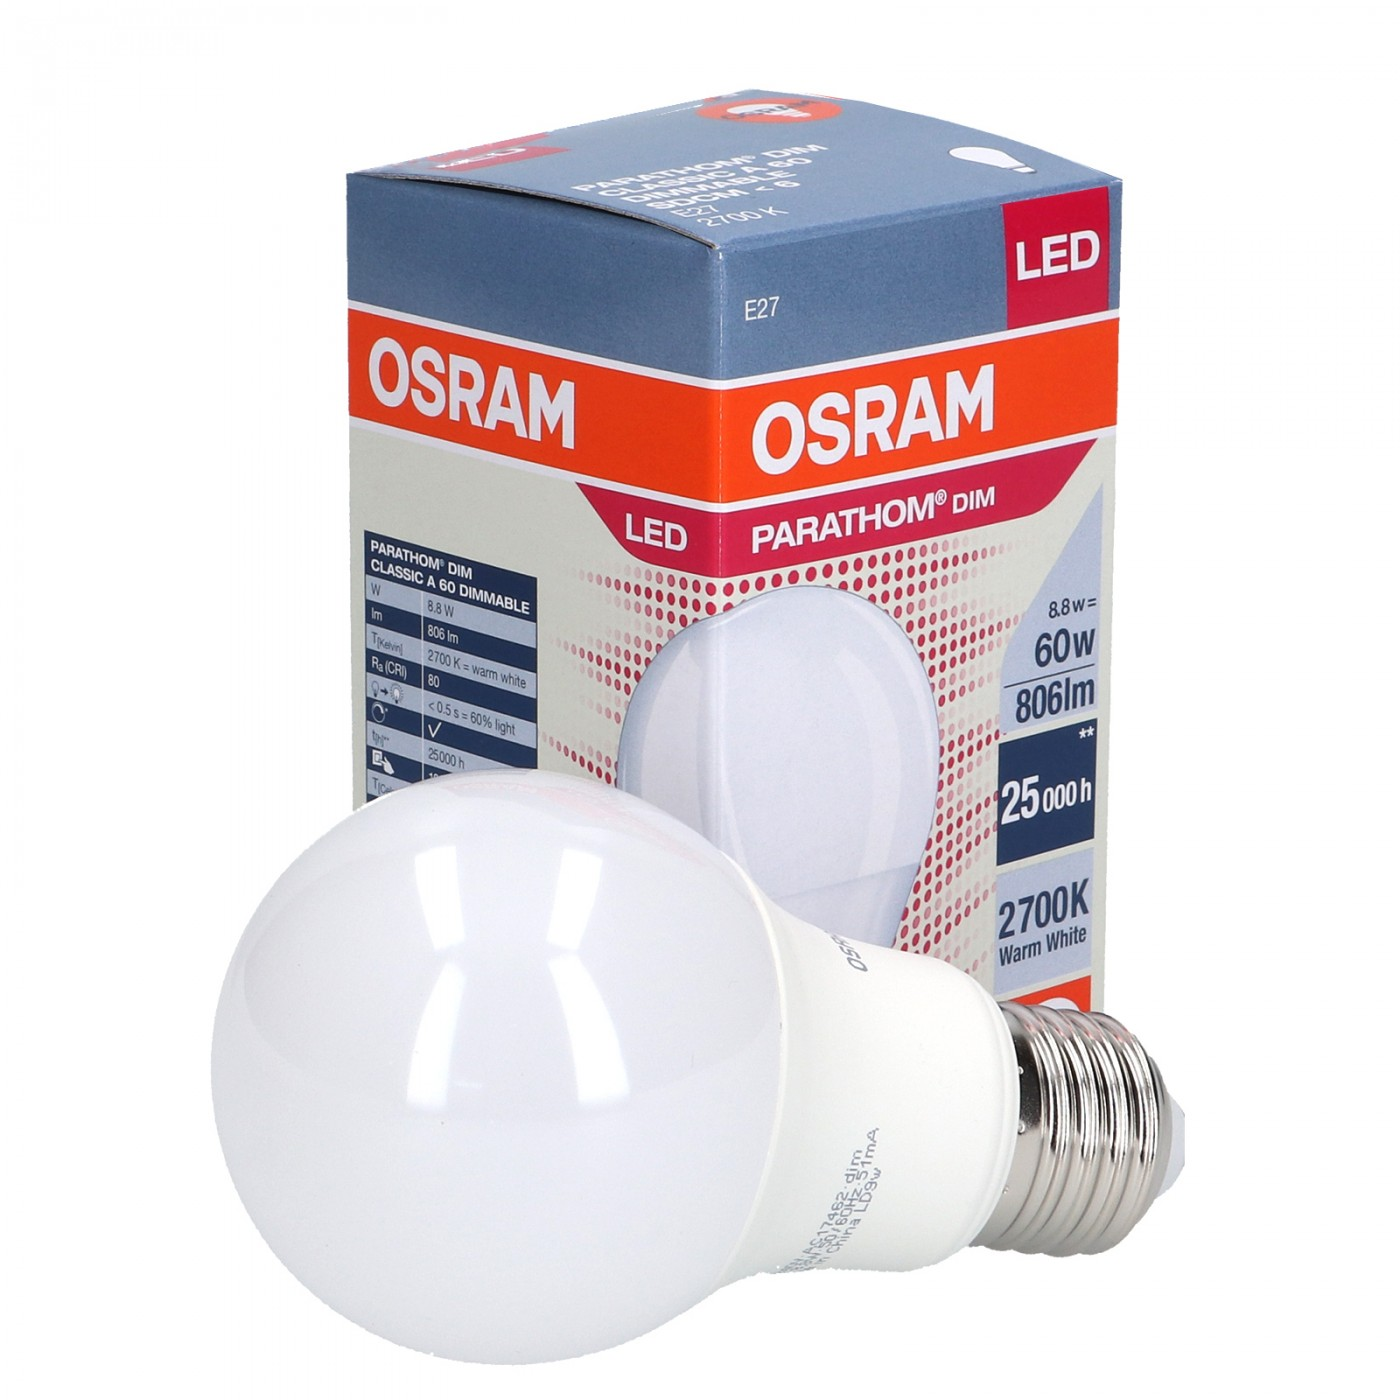 LED 8.8W E27 DIMMABLE A60   OSRAM Lighting